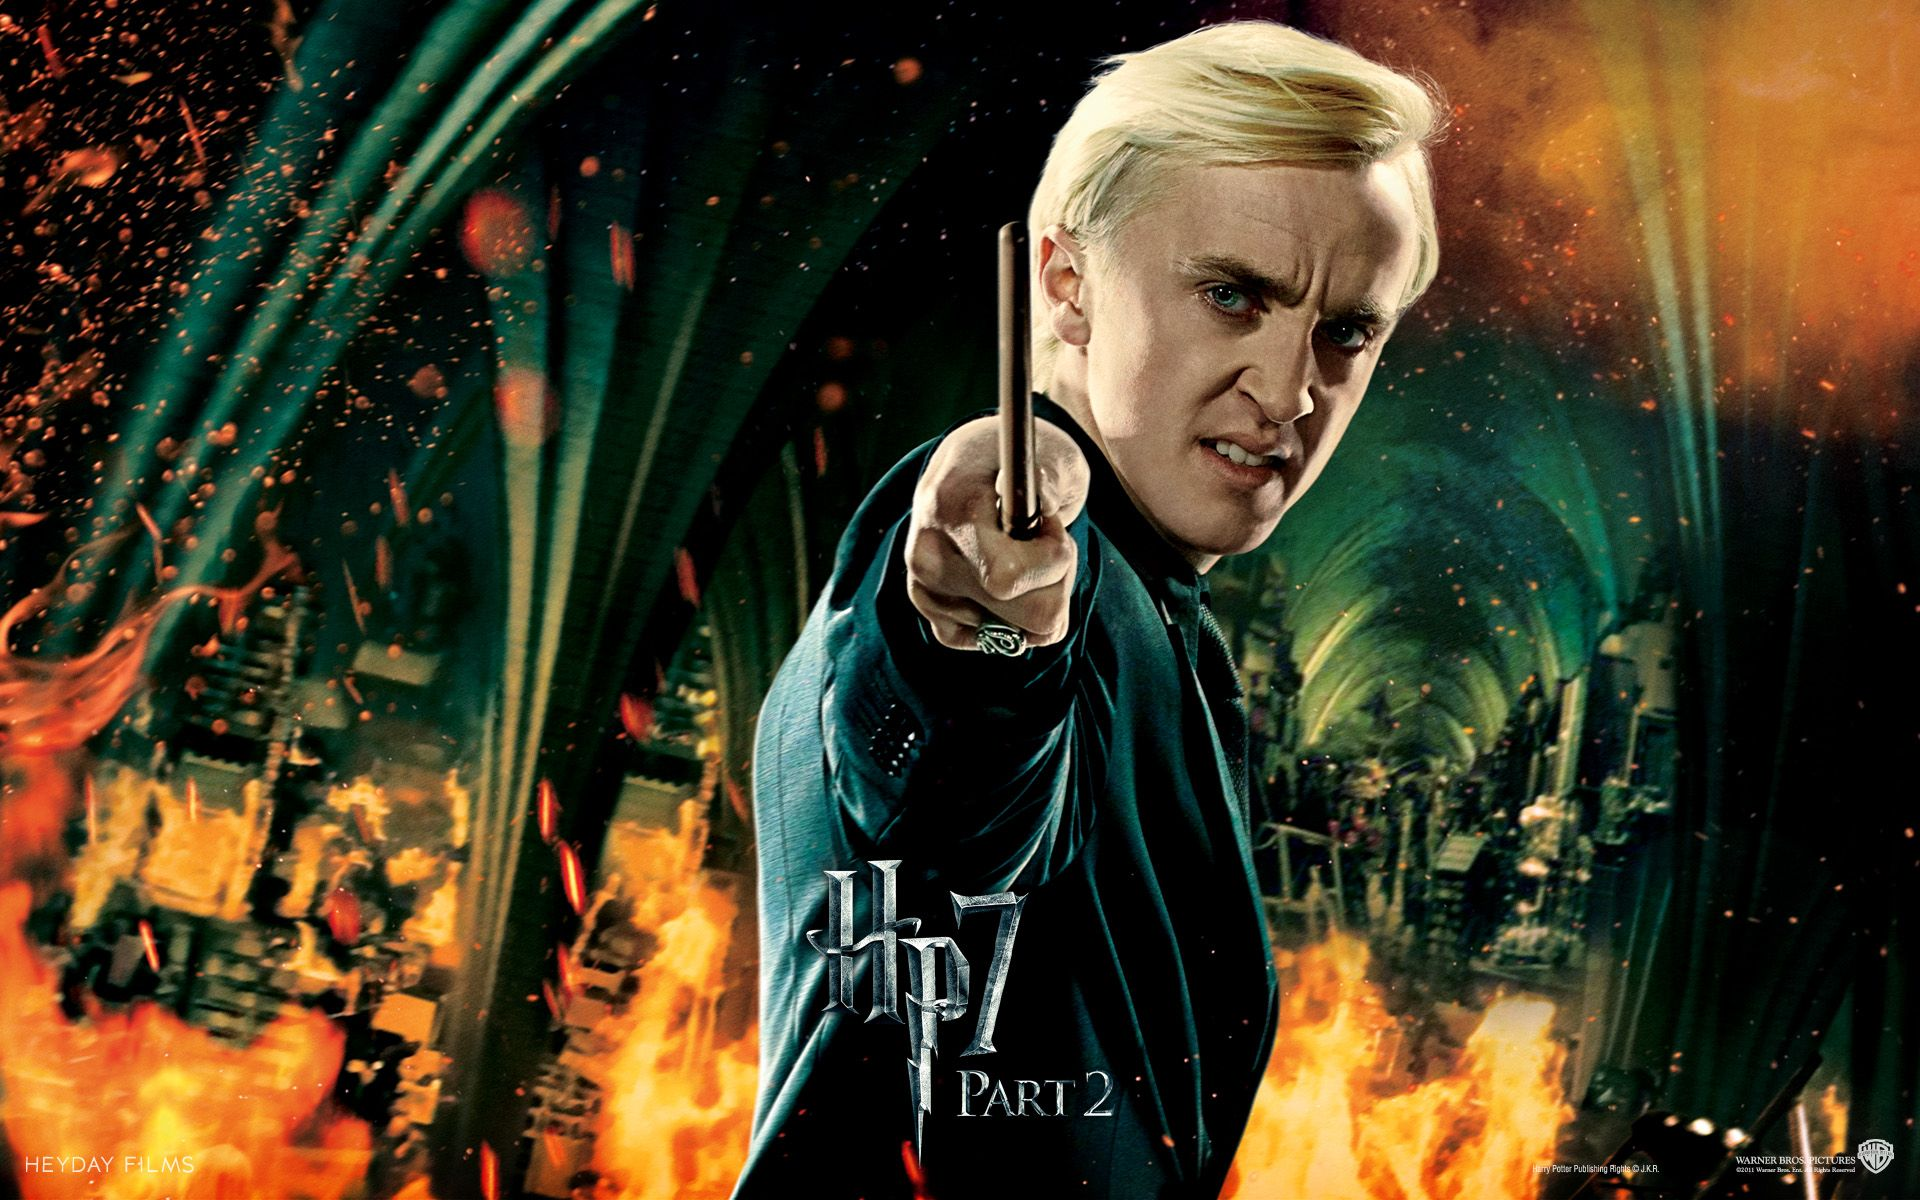 Draco Malfoy Hp7 P2 The Guys Of Harry Potter Wallpaper 24073262 Fanpop Harry Potter Draco Malfoy Harry Potter Wallpaper Harry Potter Scene